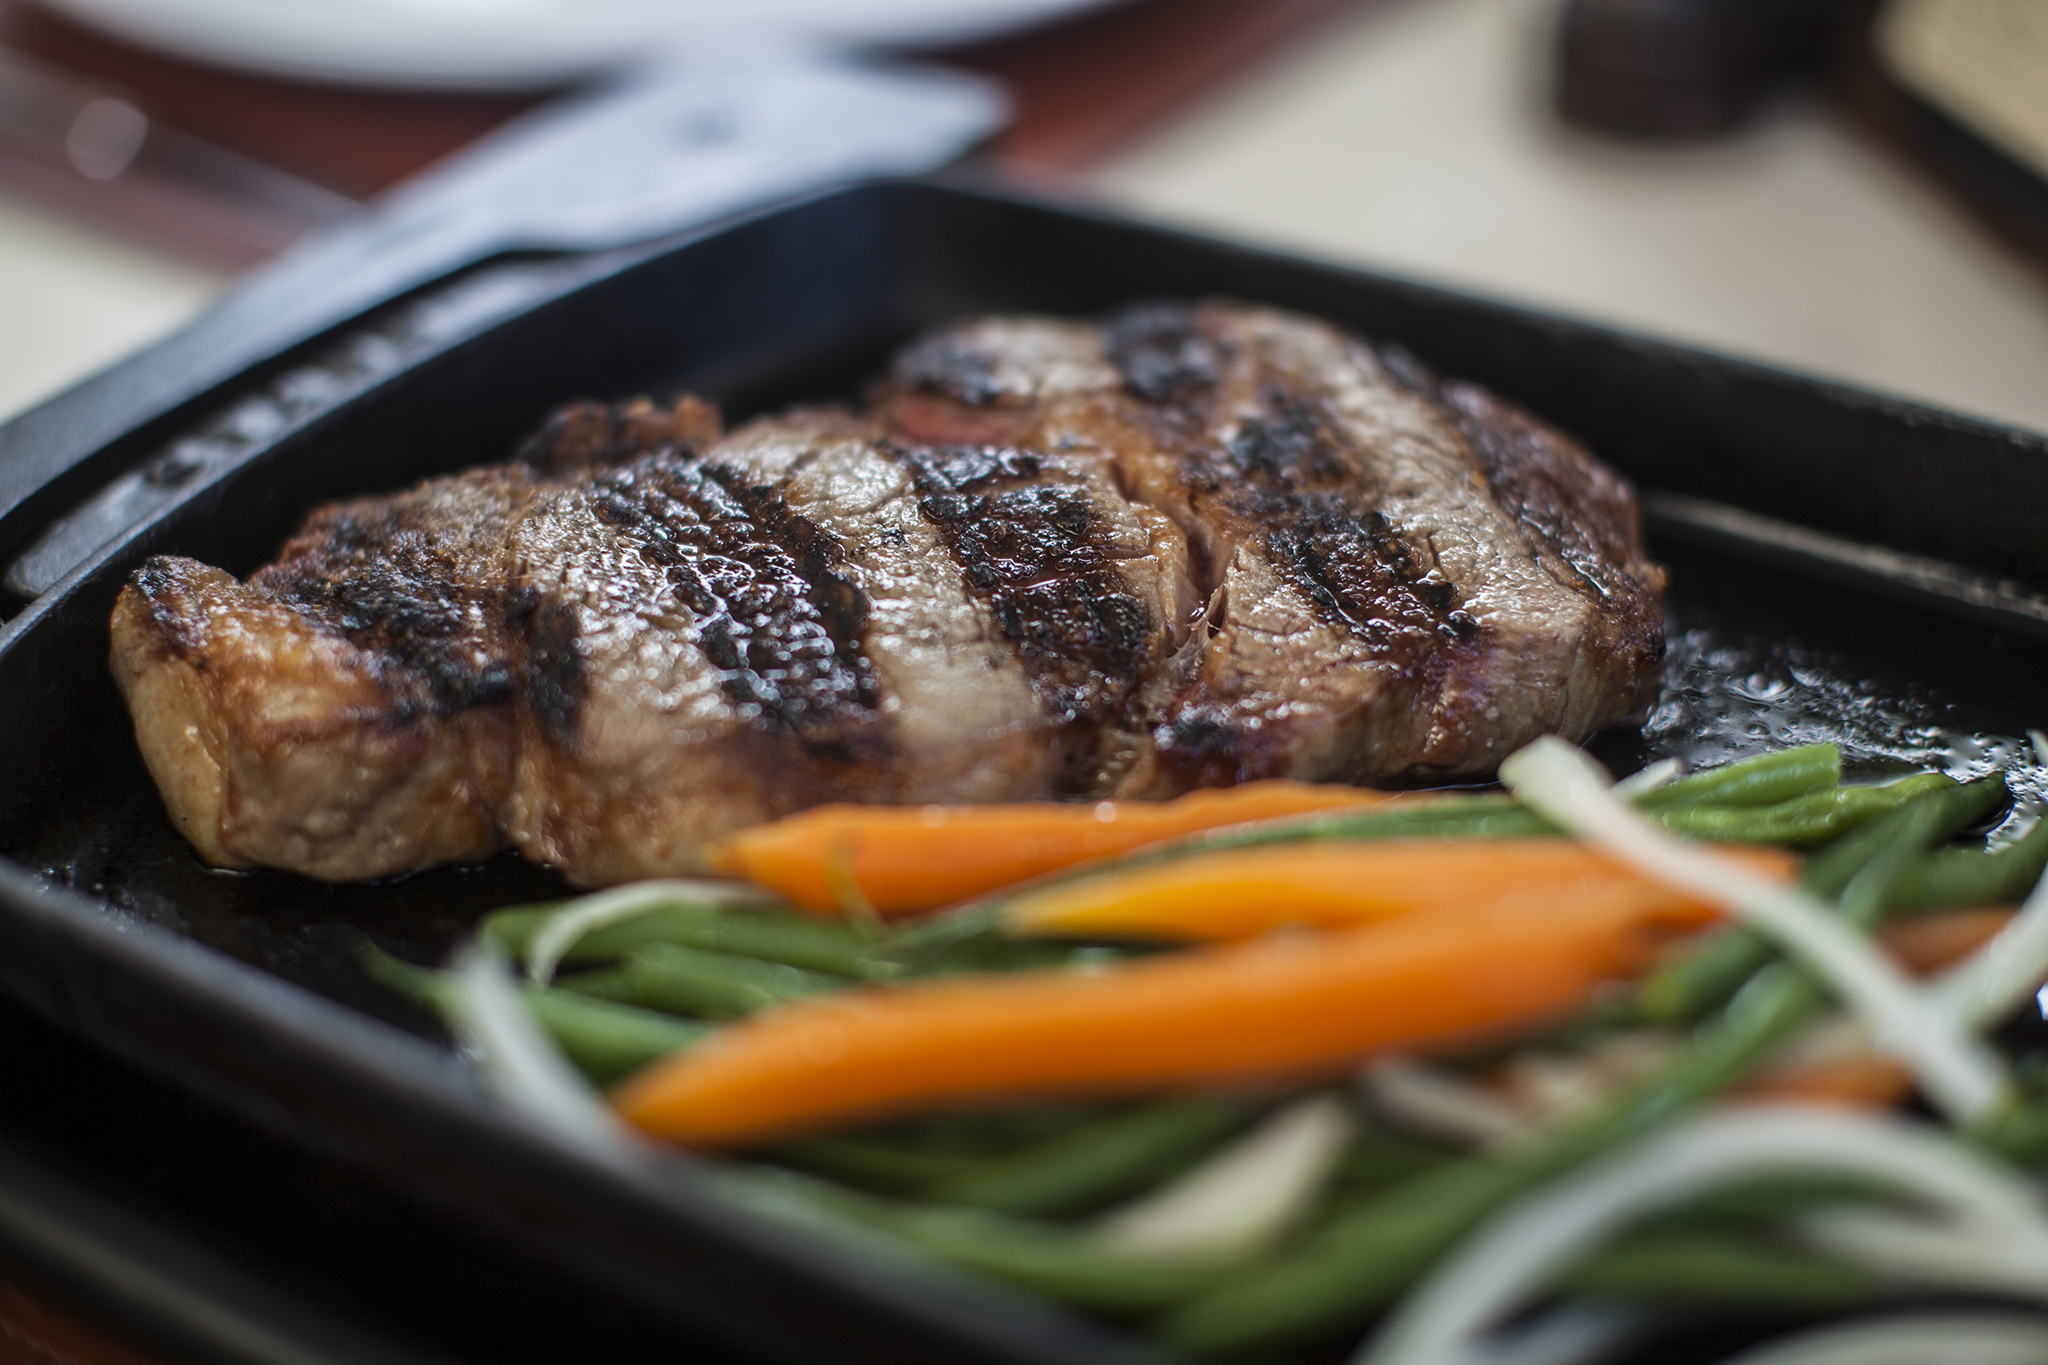 Pm fish steak house restaurants in brickell miami for Pm fish steak house